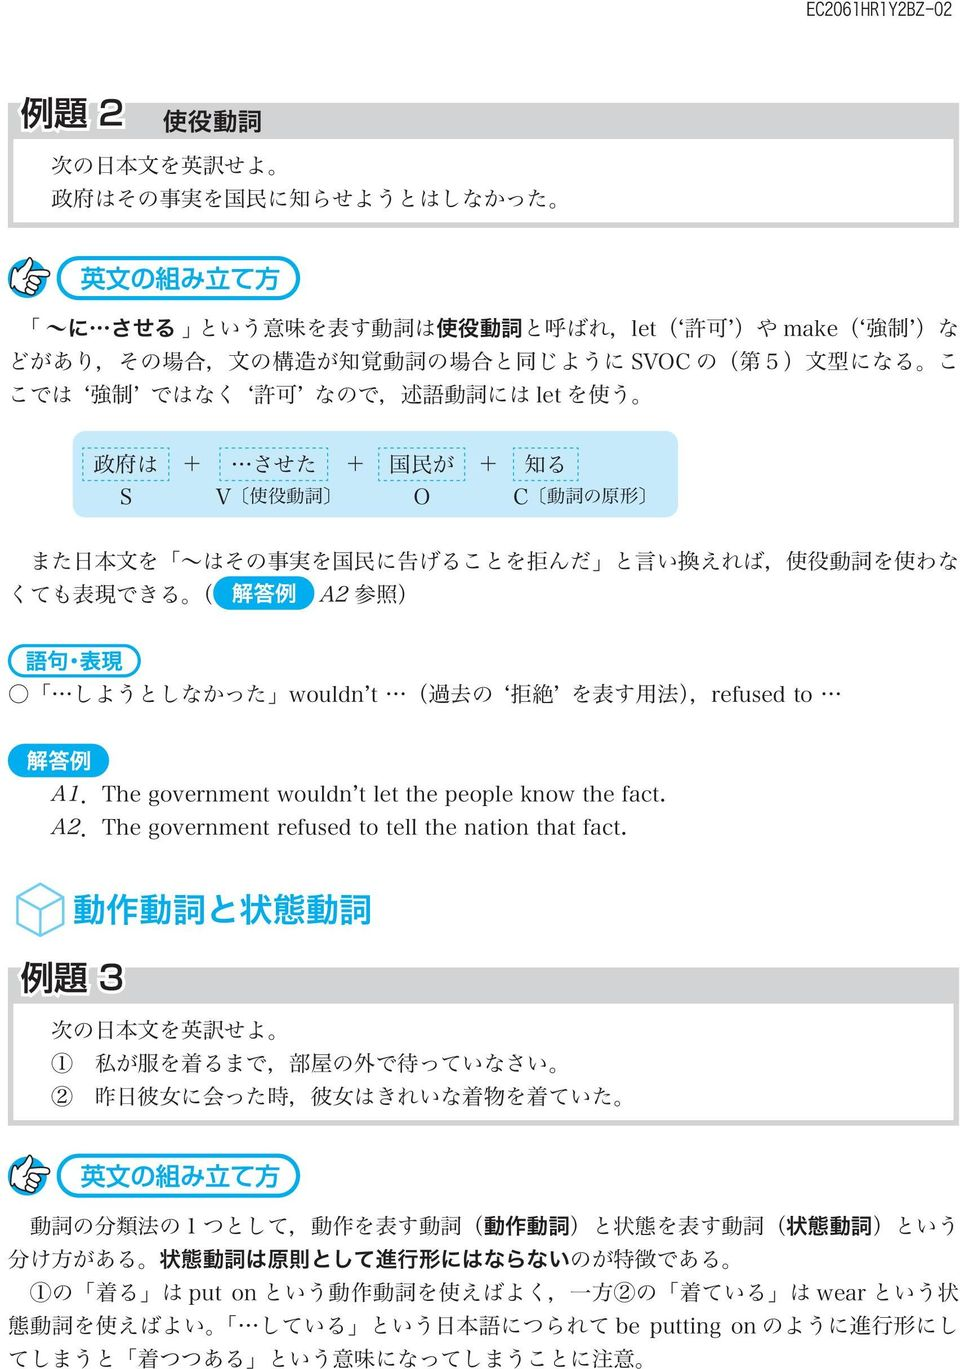 できる ( A2 参 照 ) しようとしなかった wouldn't ( 過 去 の ʻ 拒 絶 ' を 表 す 用 法 ),refused to A1.The government wouldn't let the people know the fact. A2.The government refused to tell the nation that fact.